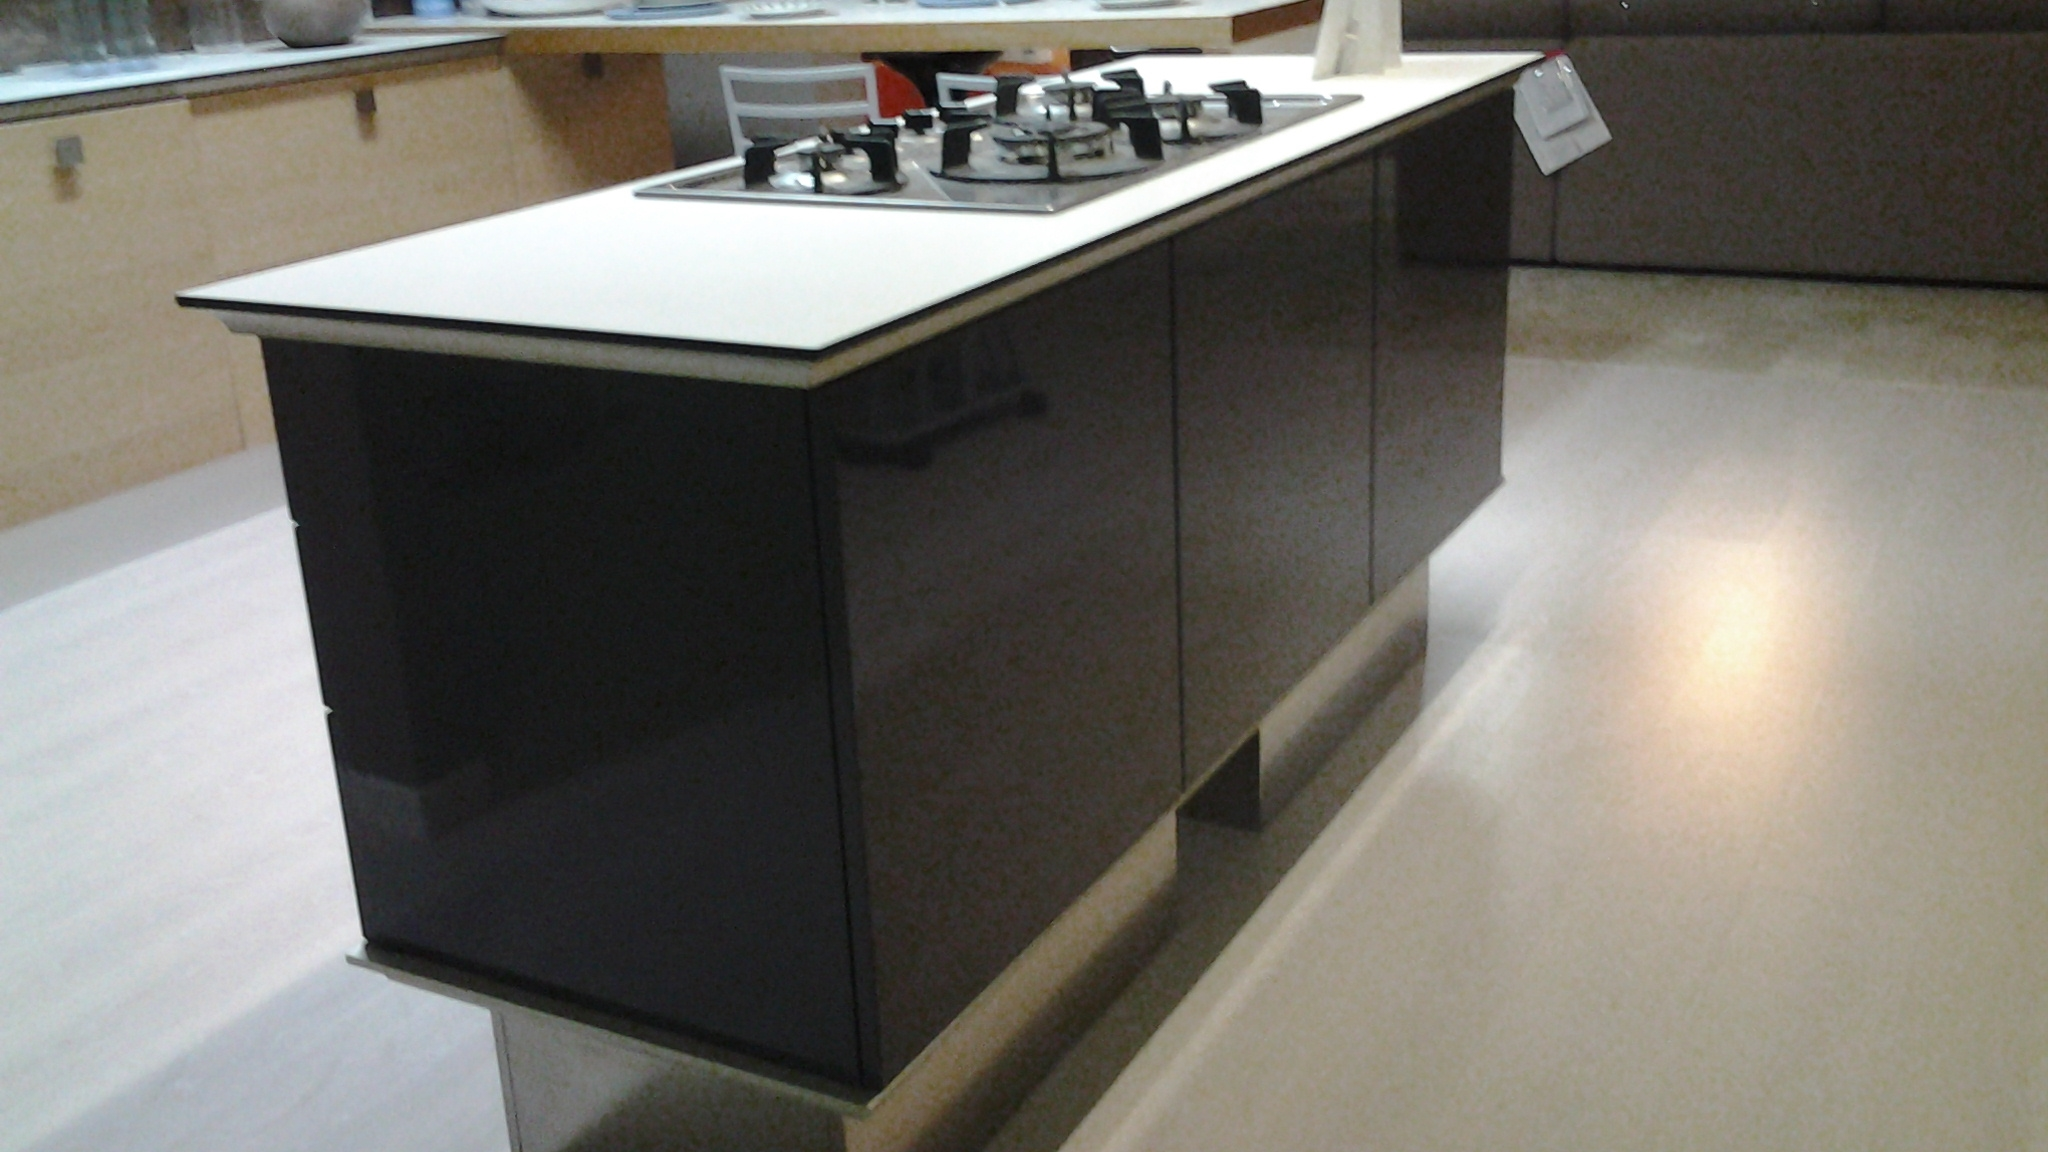 Cucine Moderne Ad Angolo Lube. Cucine Moderne Ad Angolo Lube With ...